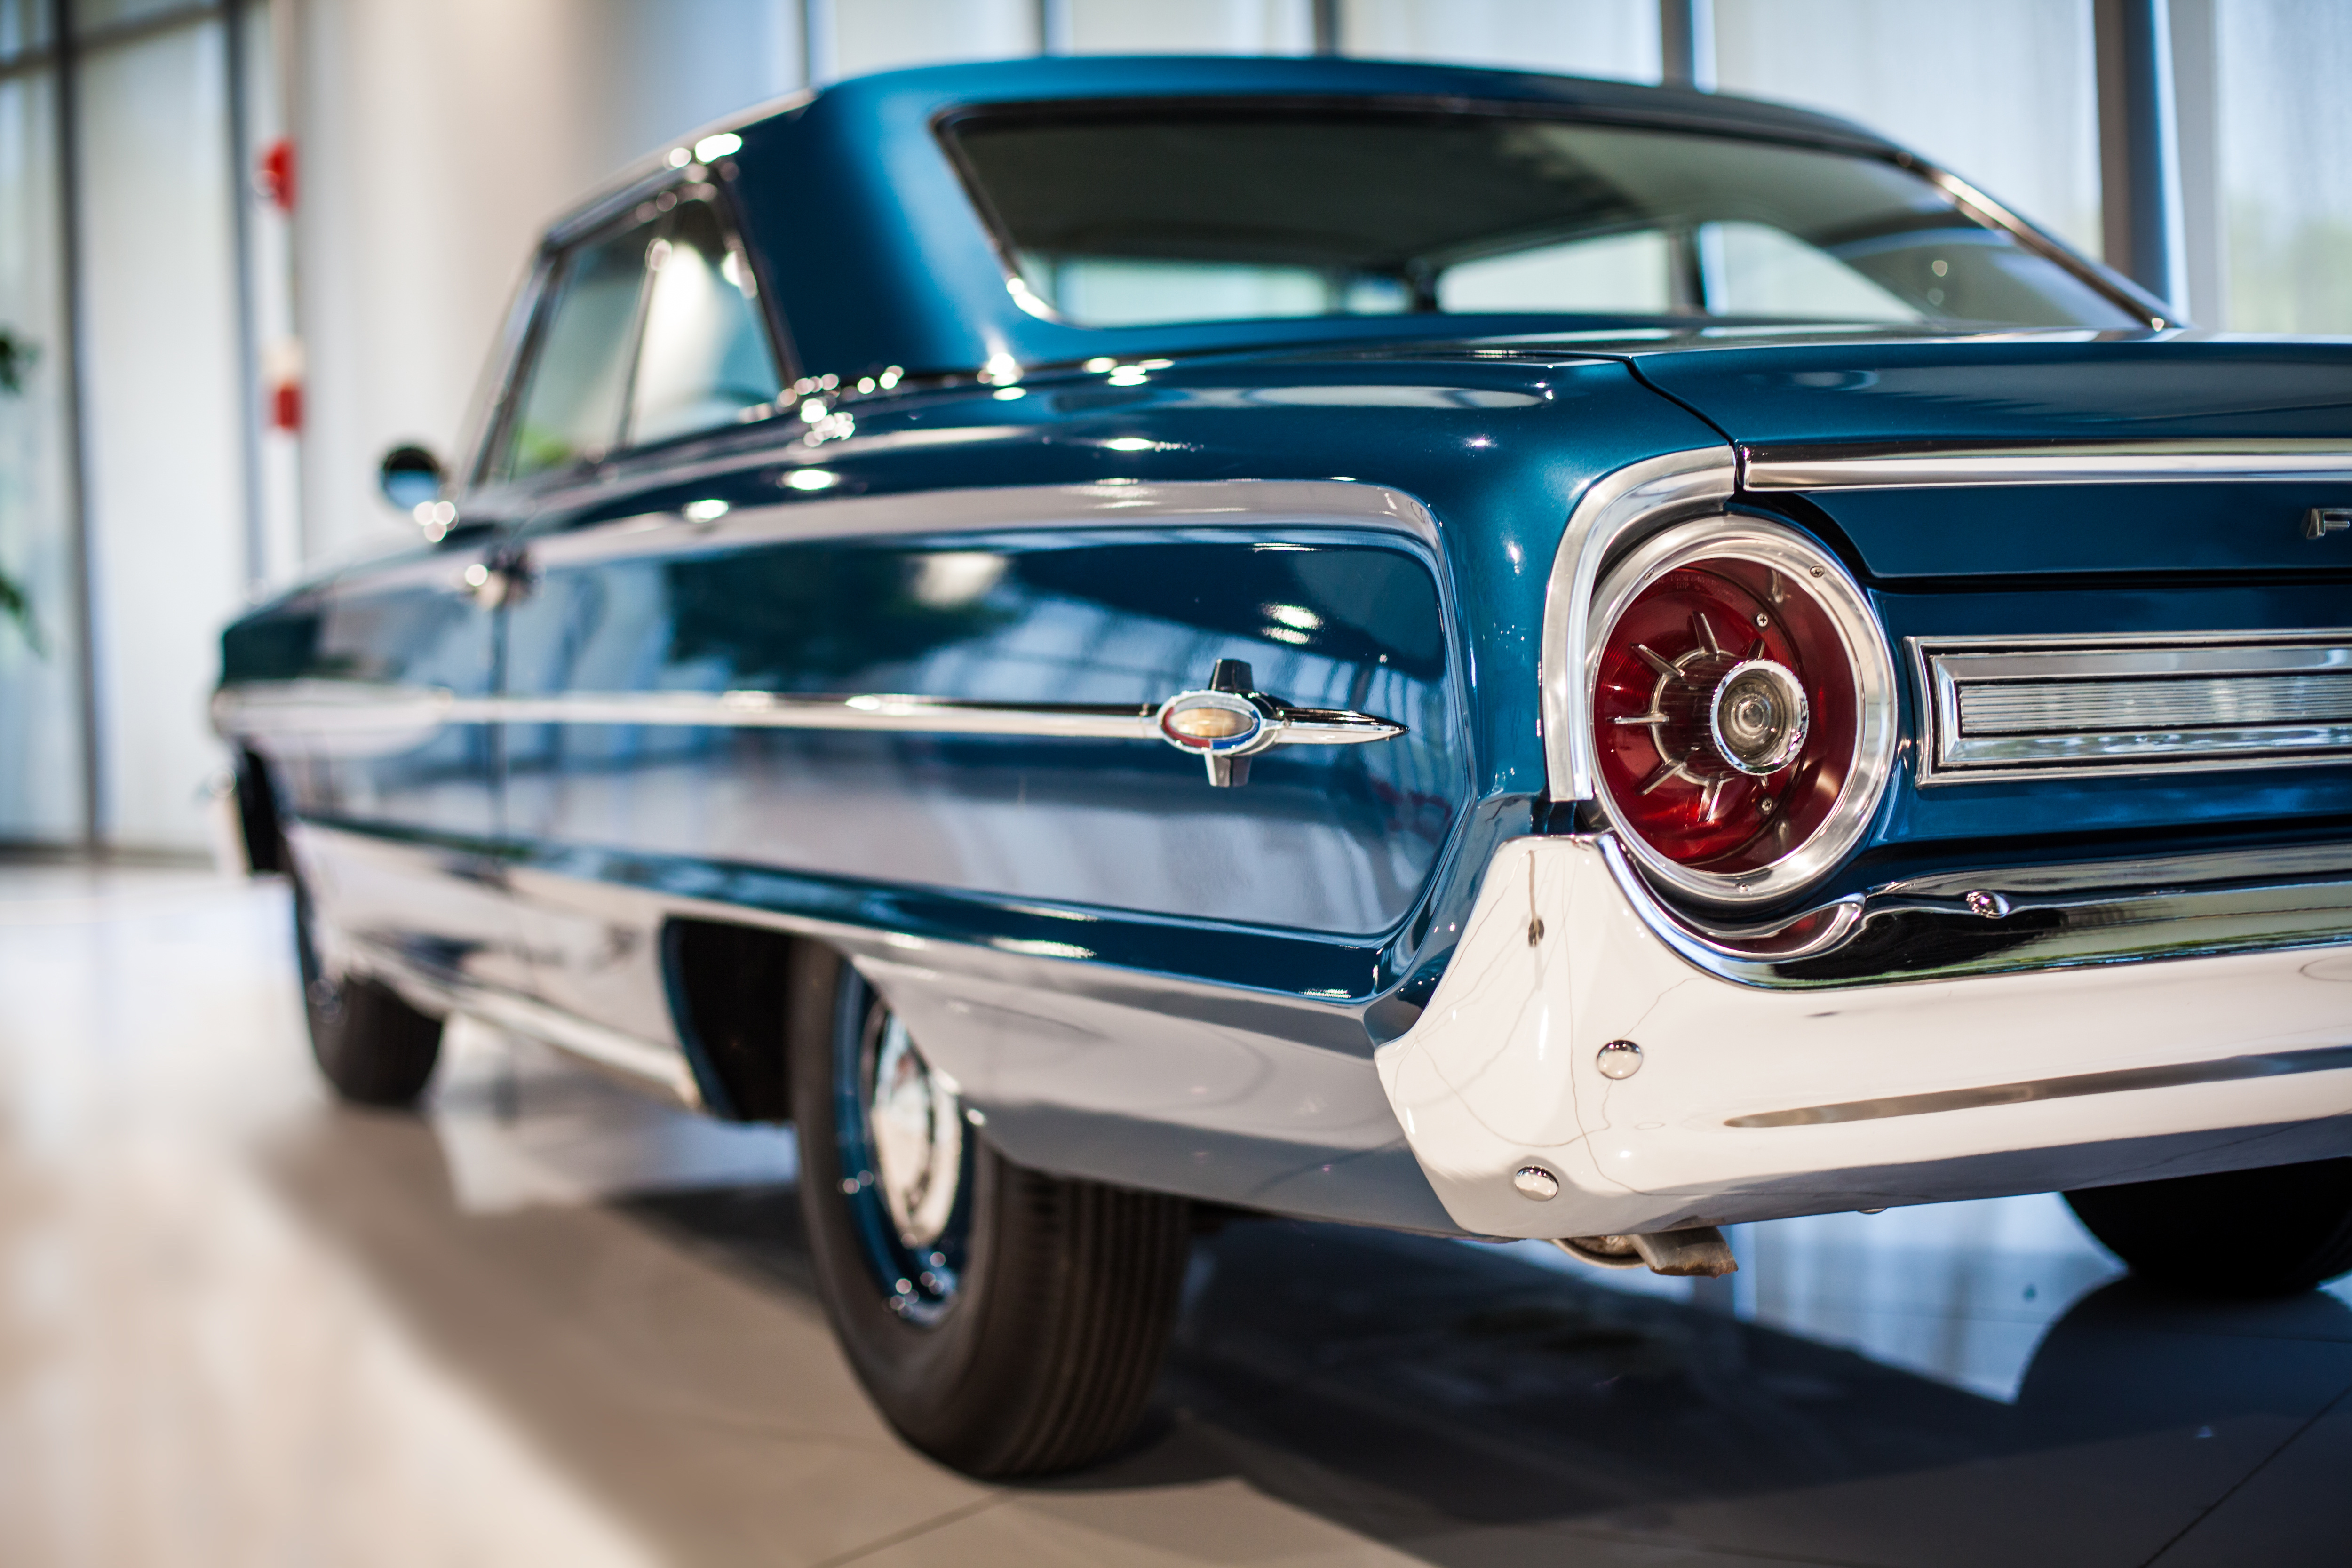 Top Car Museums on the East Coast for RVers